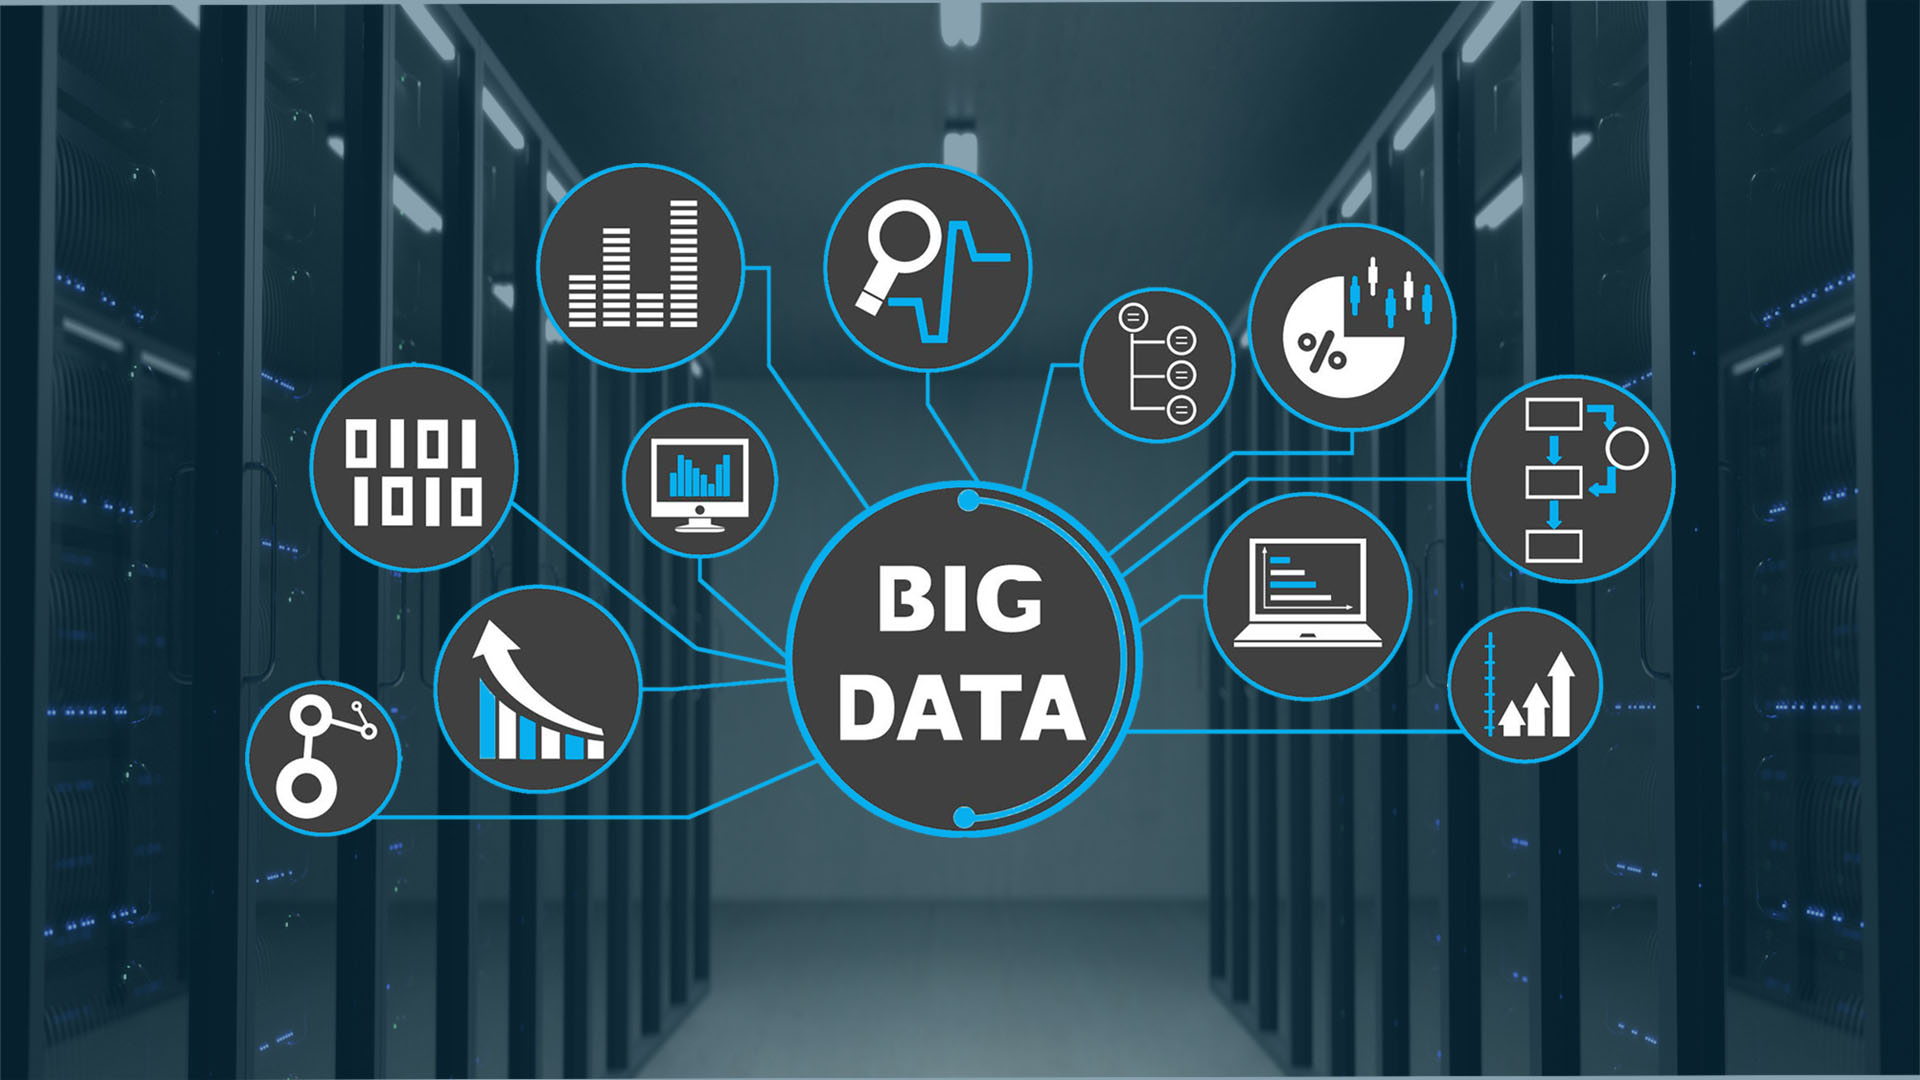 What to look for in big data companies